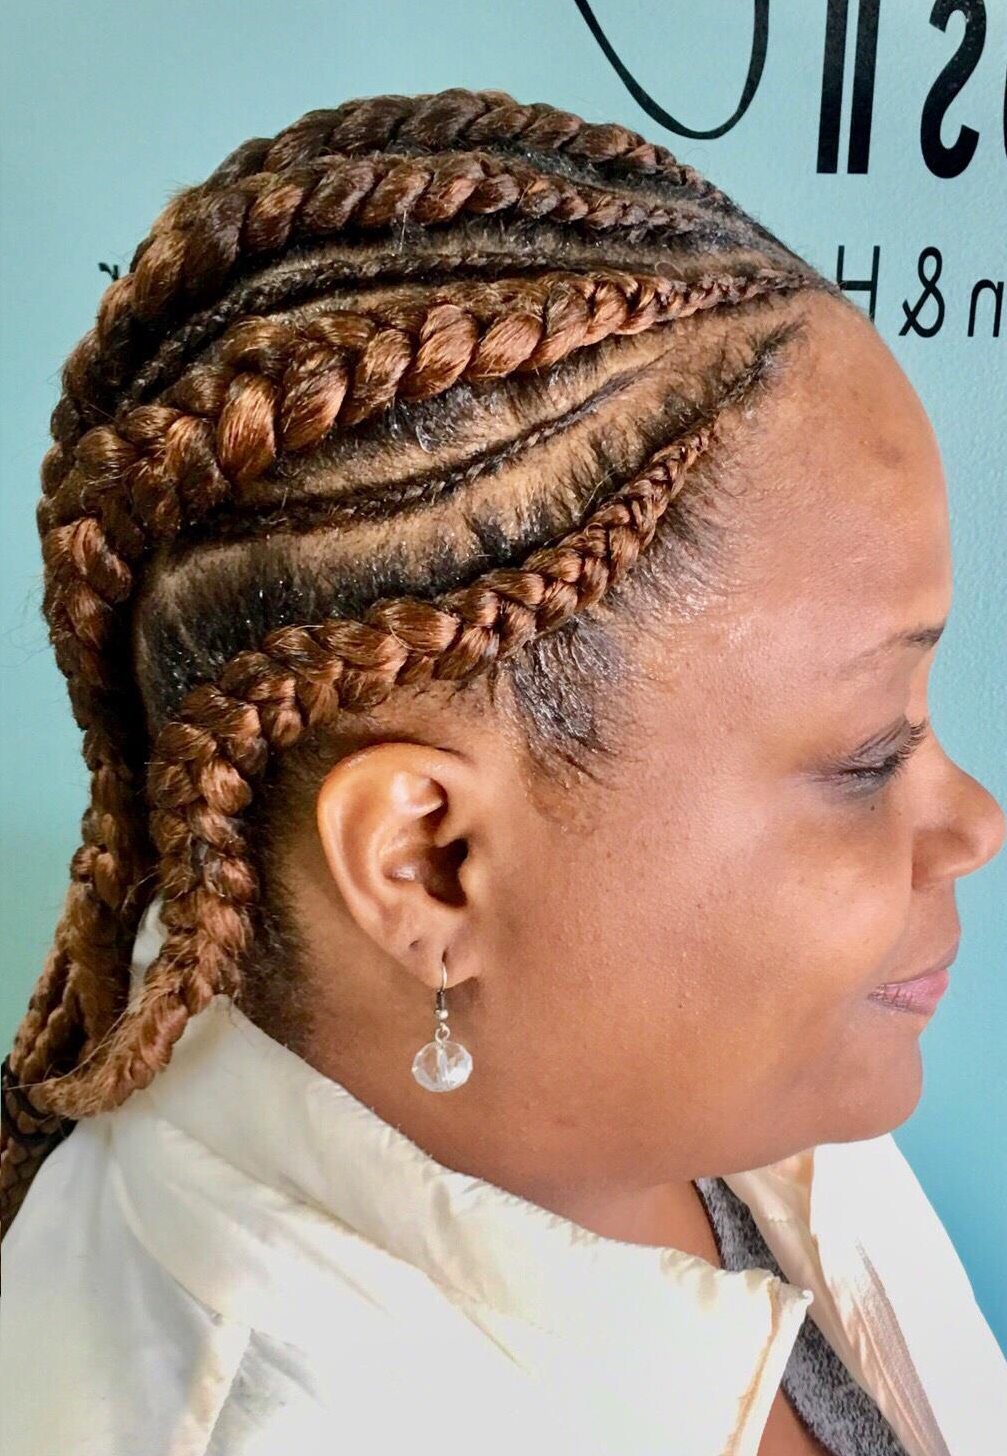 85 Braided Updo S 85 Braid Styles And Prices Vary Twist Hairstyles Braid Styles Hair Styles